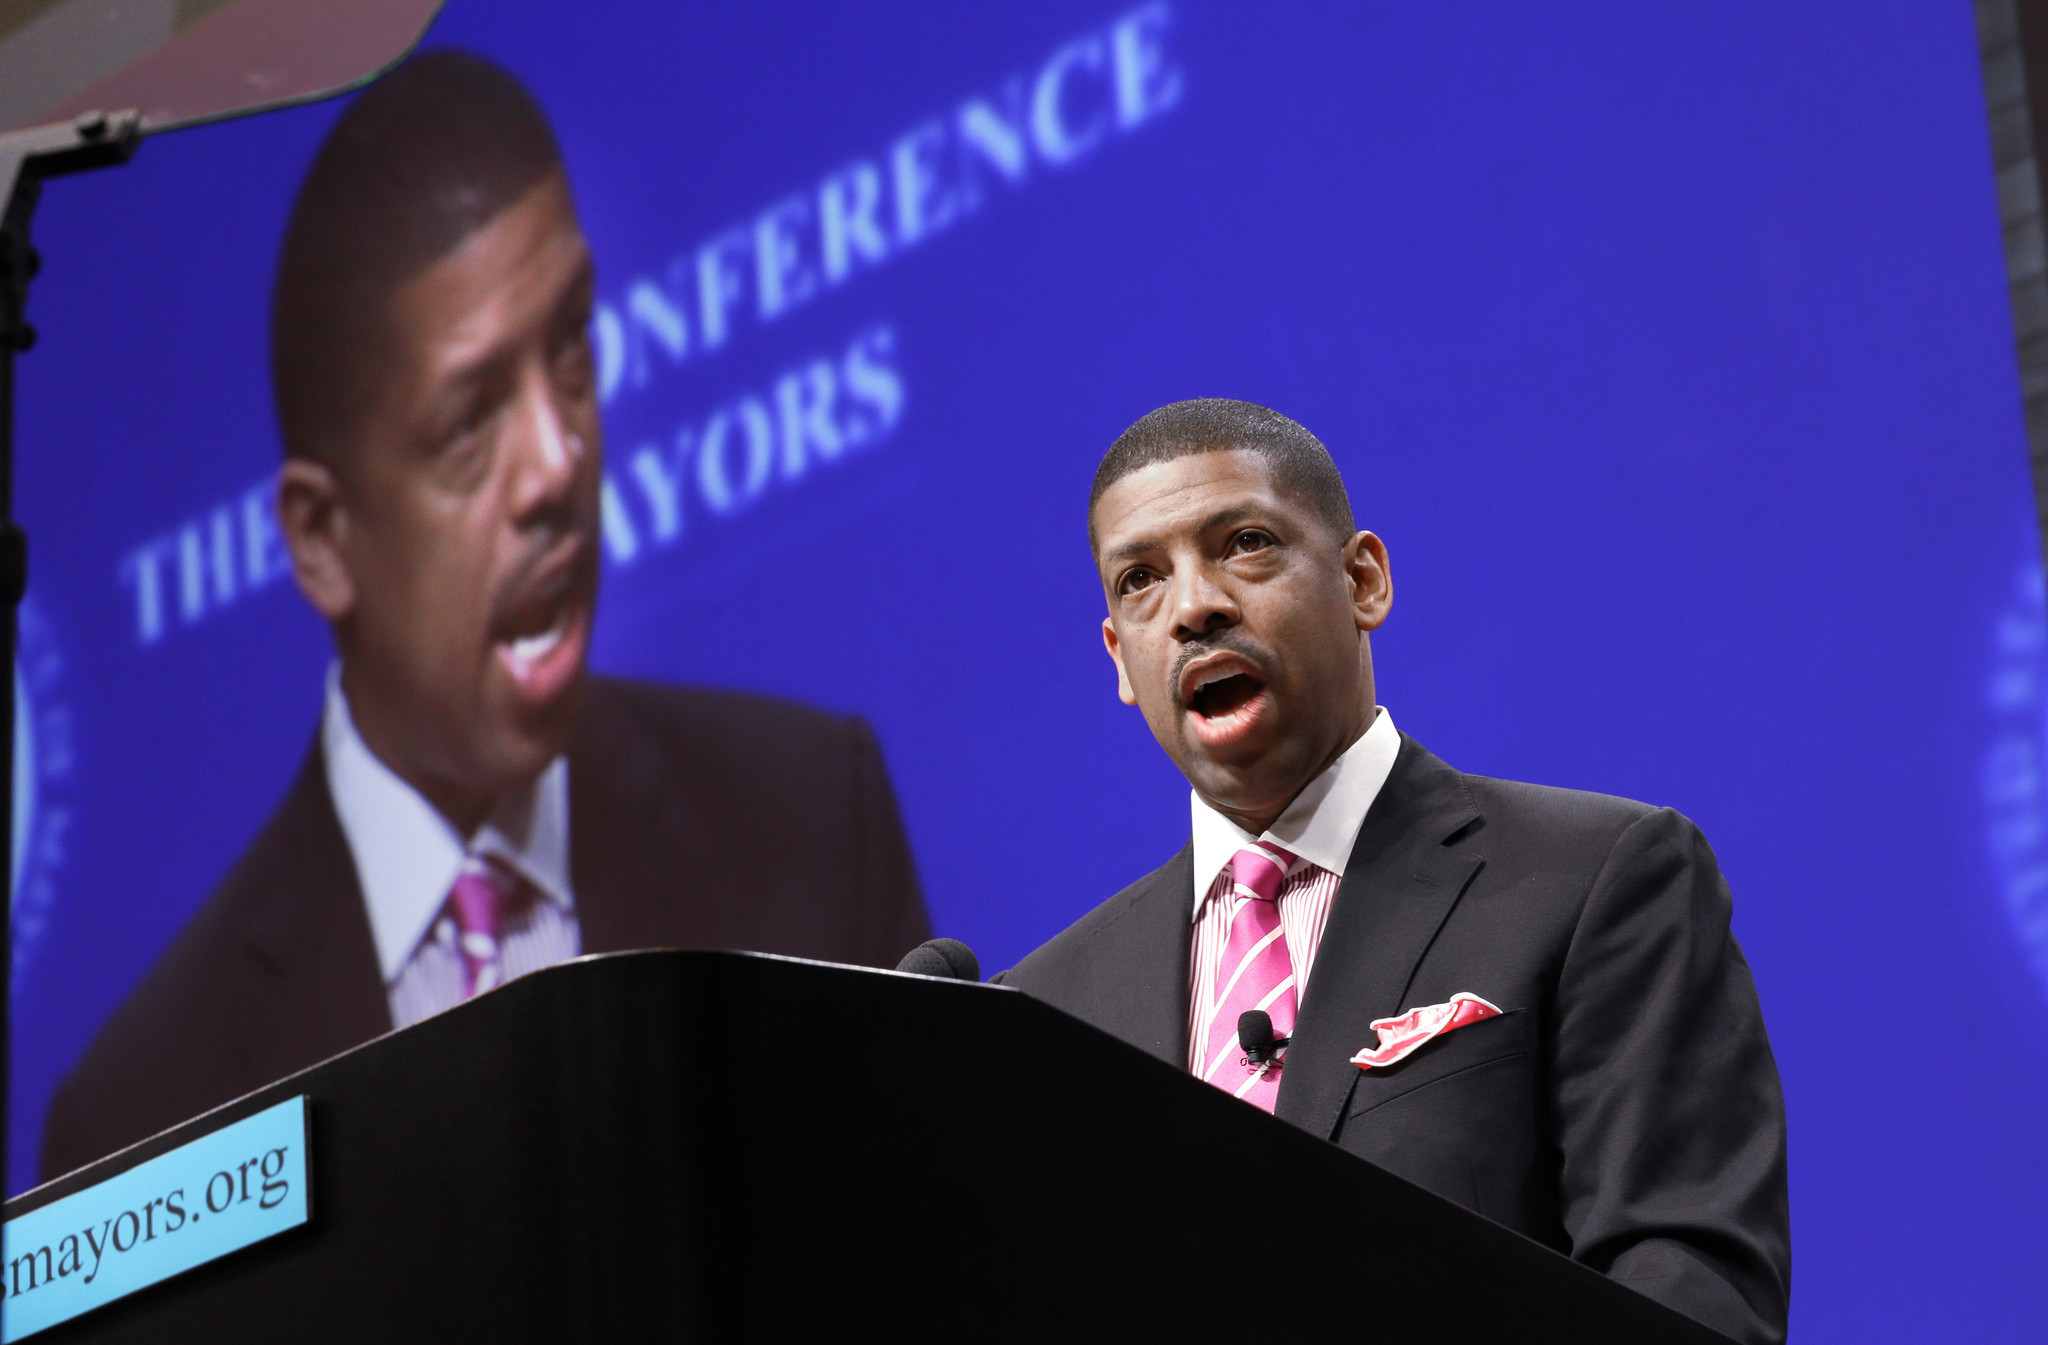 Sacramento Mayor Kevin Johnson won t run for another term LA Times